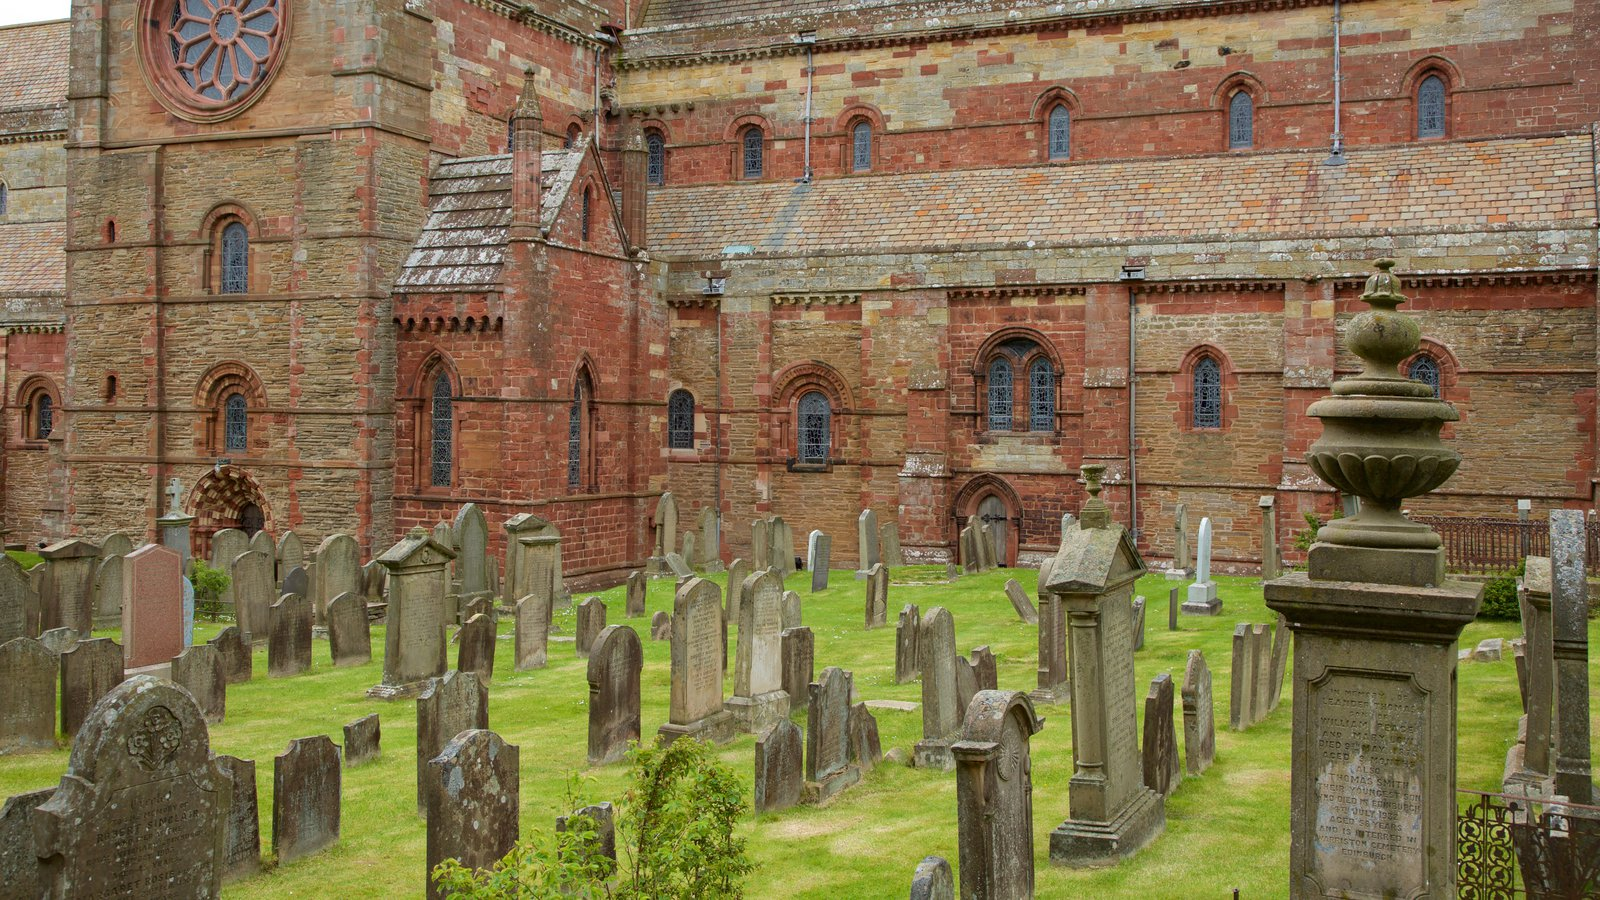 St. Magnus Cathedral featuring a cemetery, heritage elements and heritage architecture